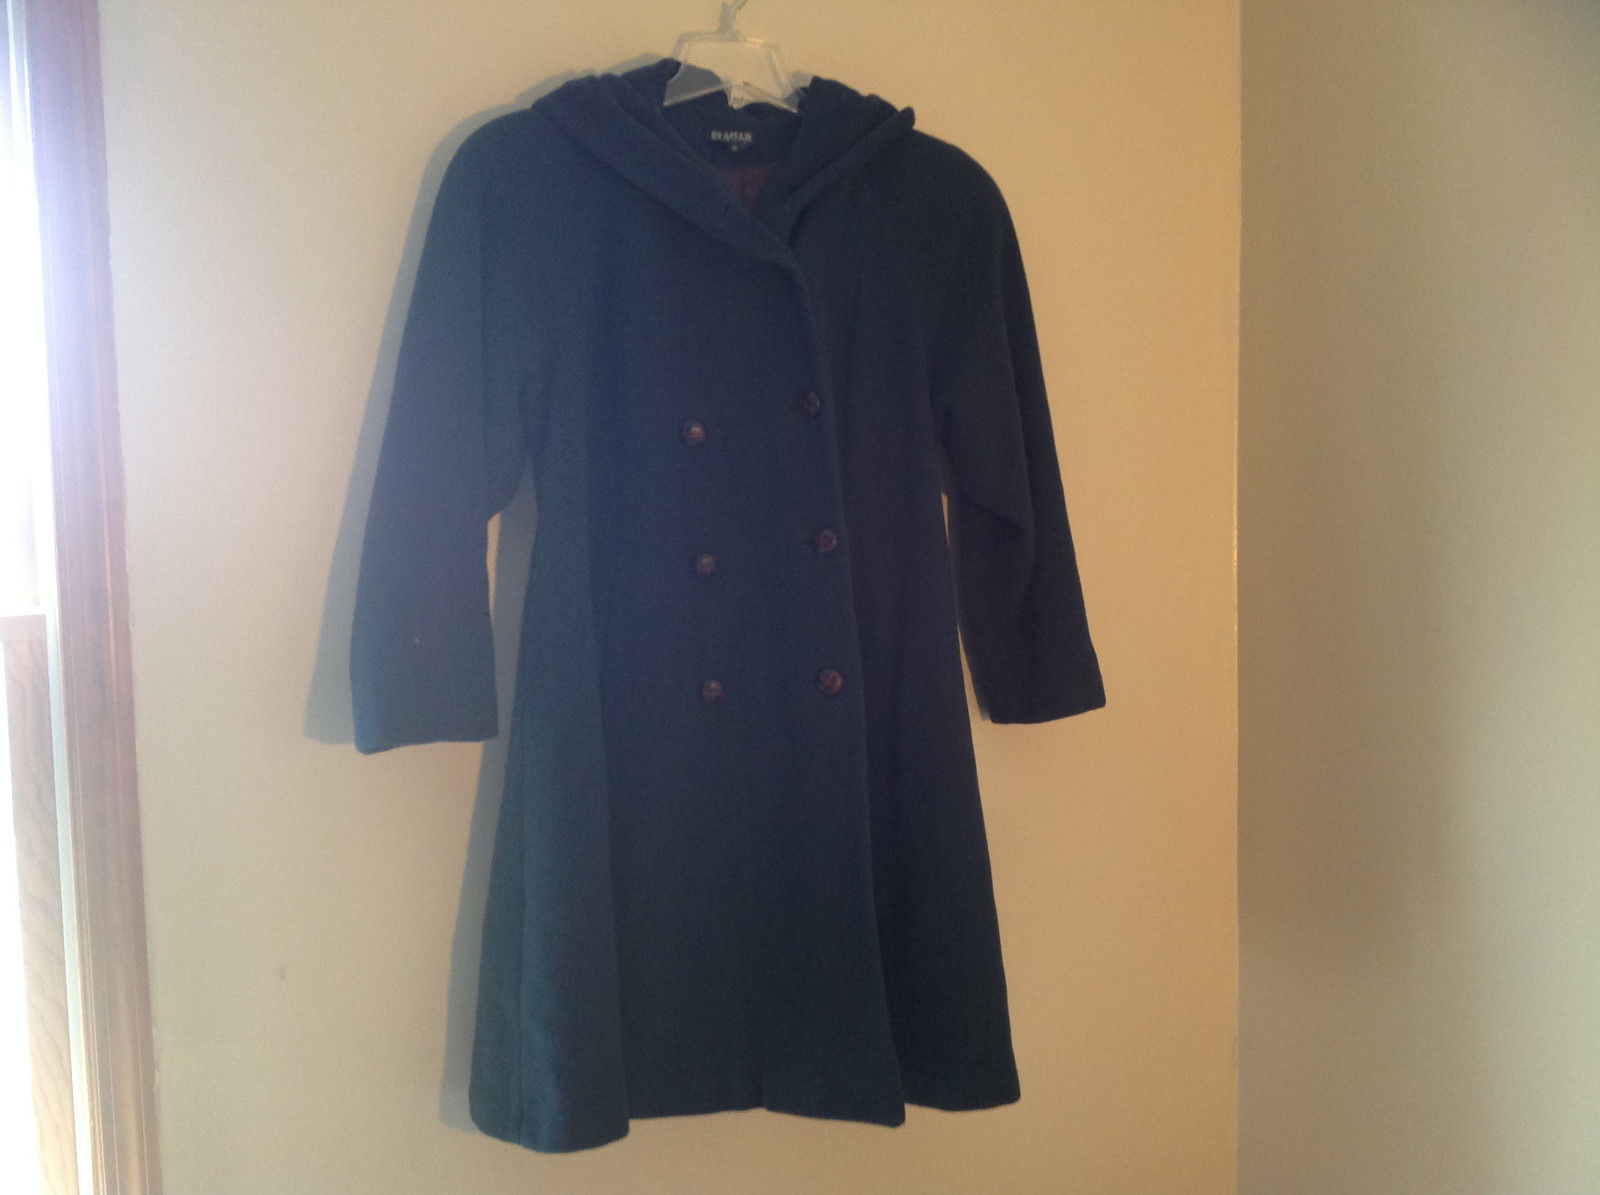 Braefair Blue Green Double Breasted Long Length Hooded Peacoat Size 10